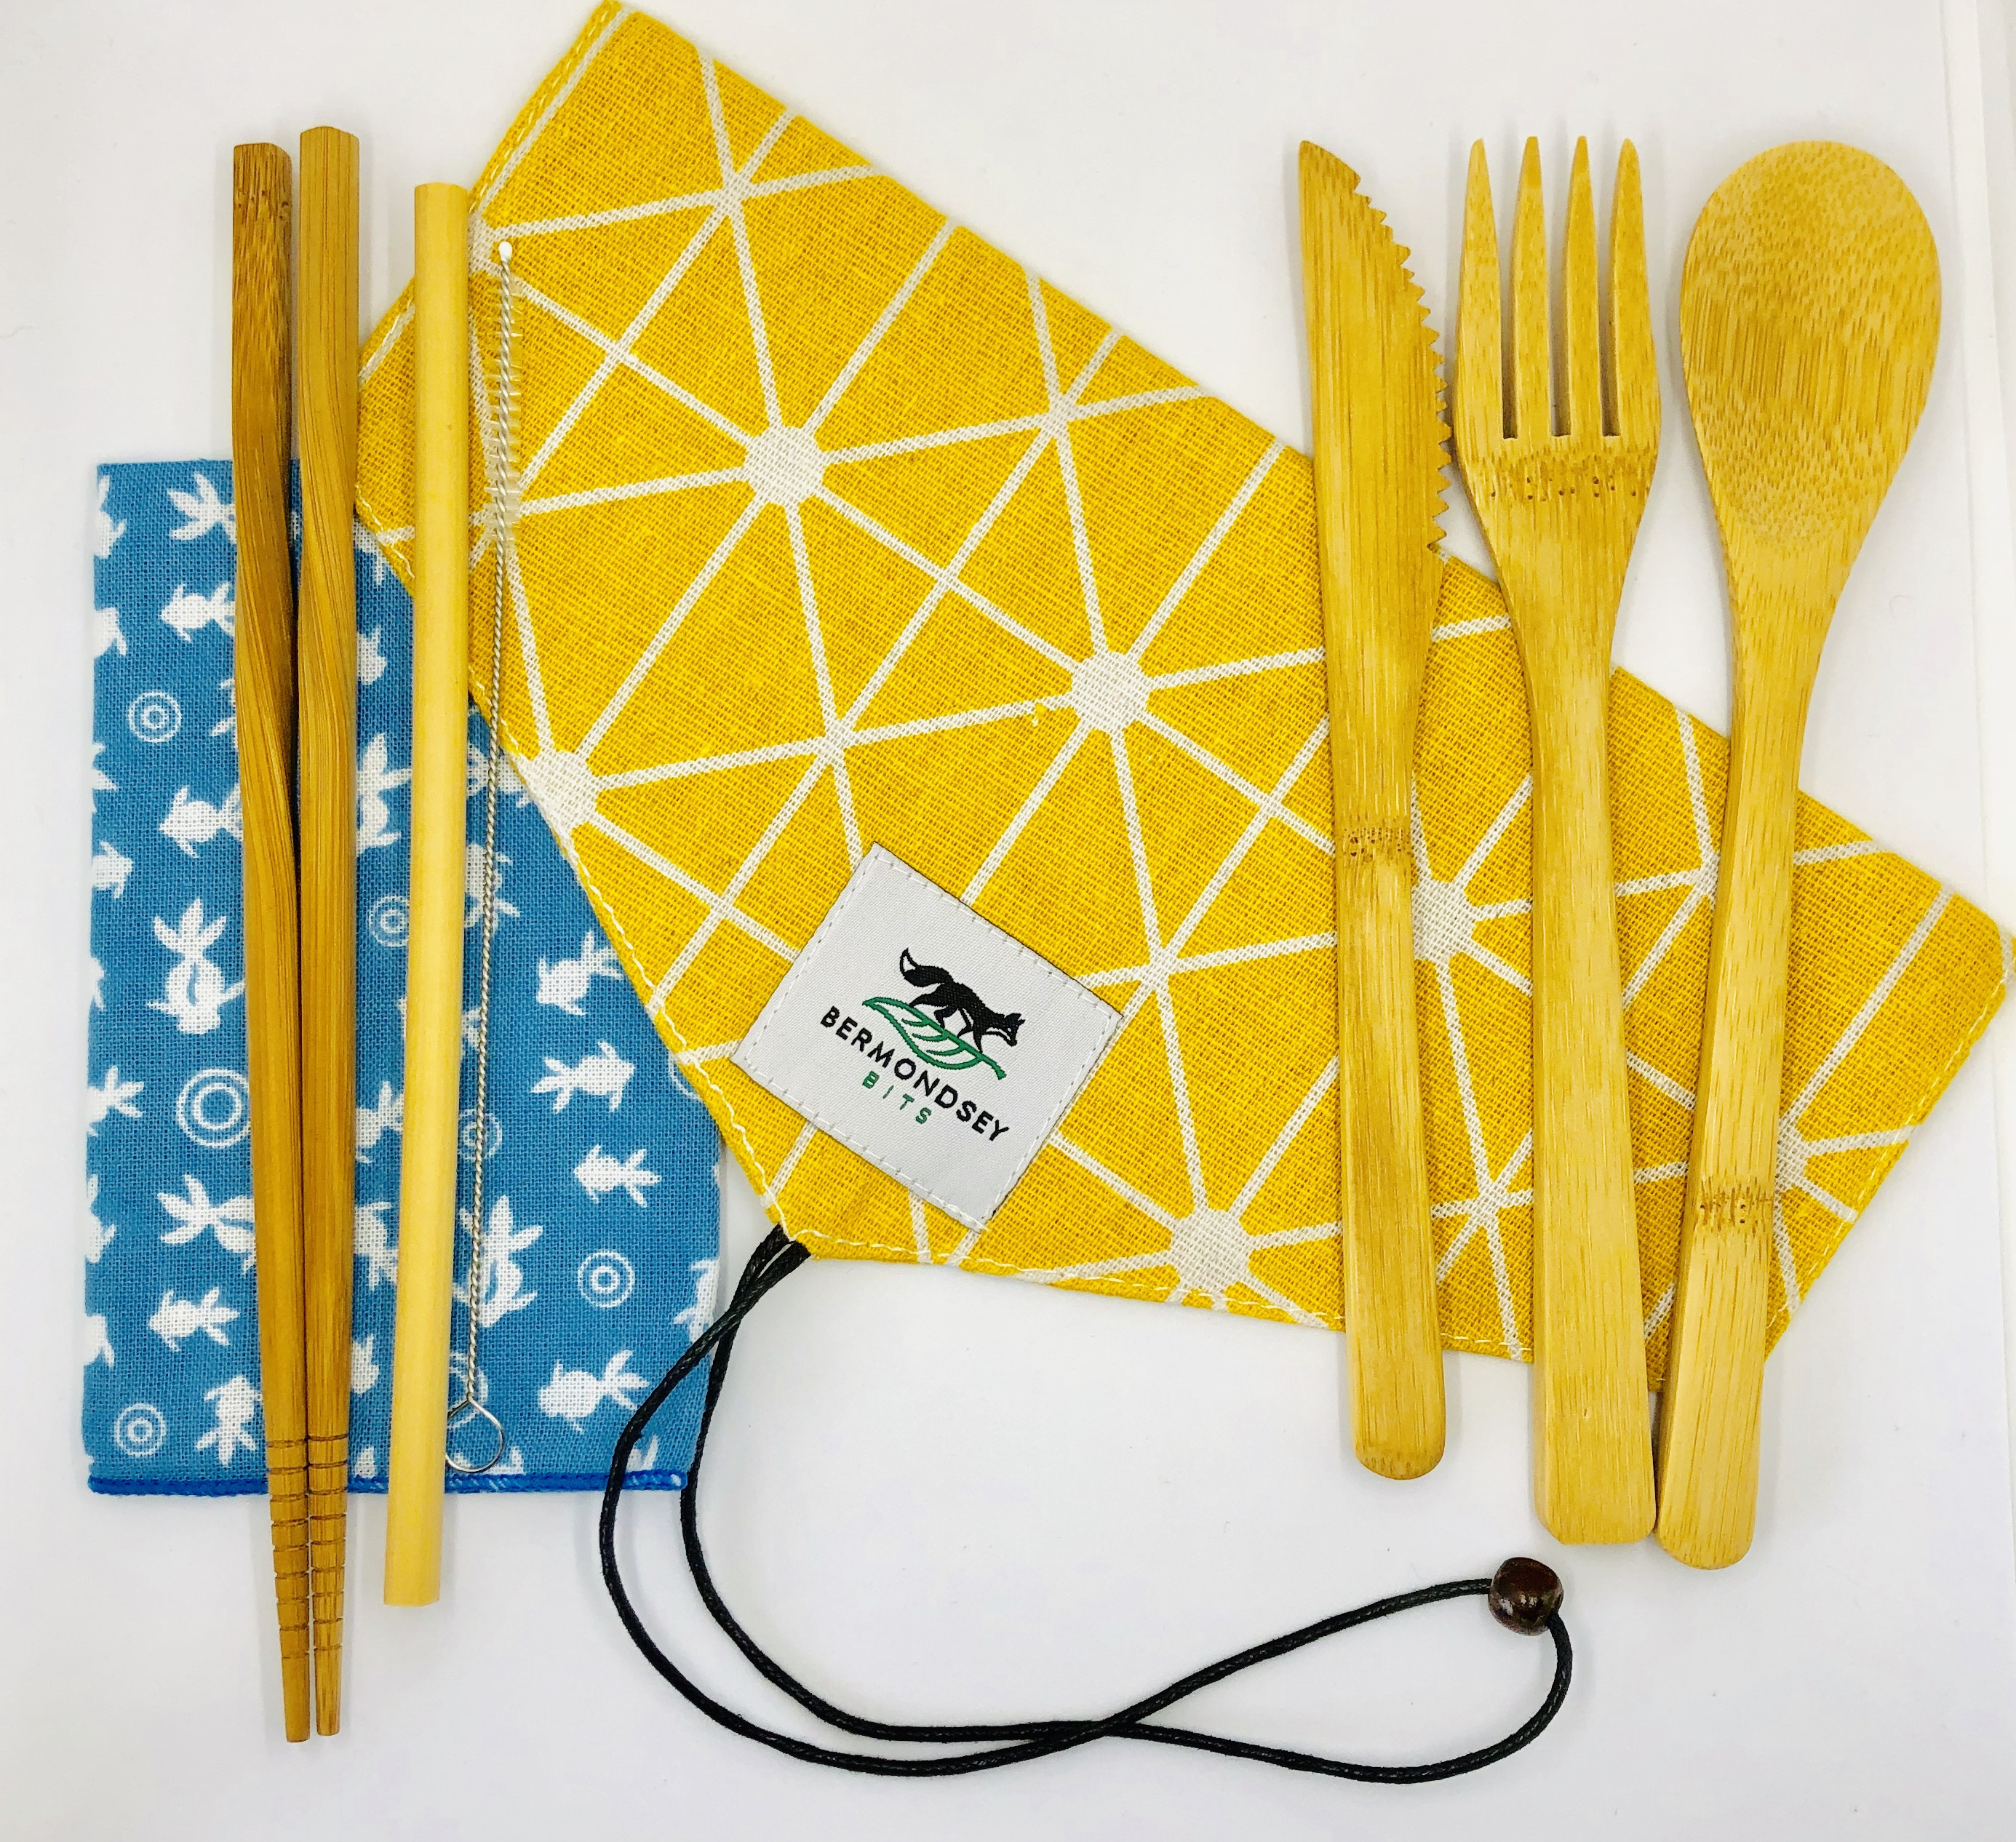 Bamboo cutlery set (8 pcs) including napkin and cutlery bag [Yellow]